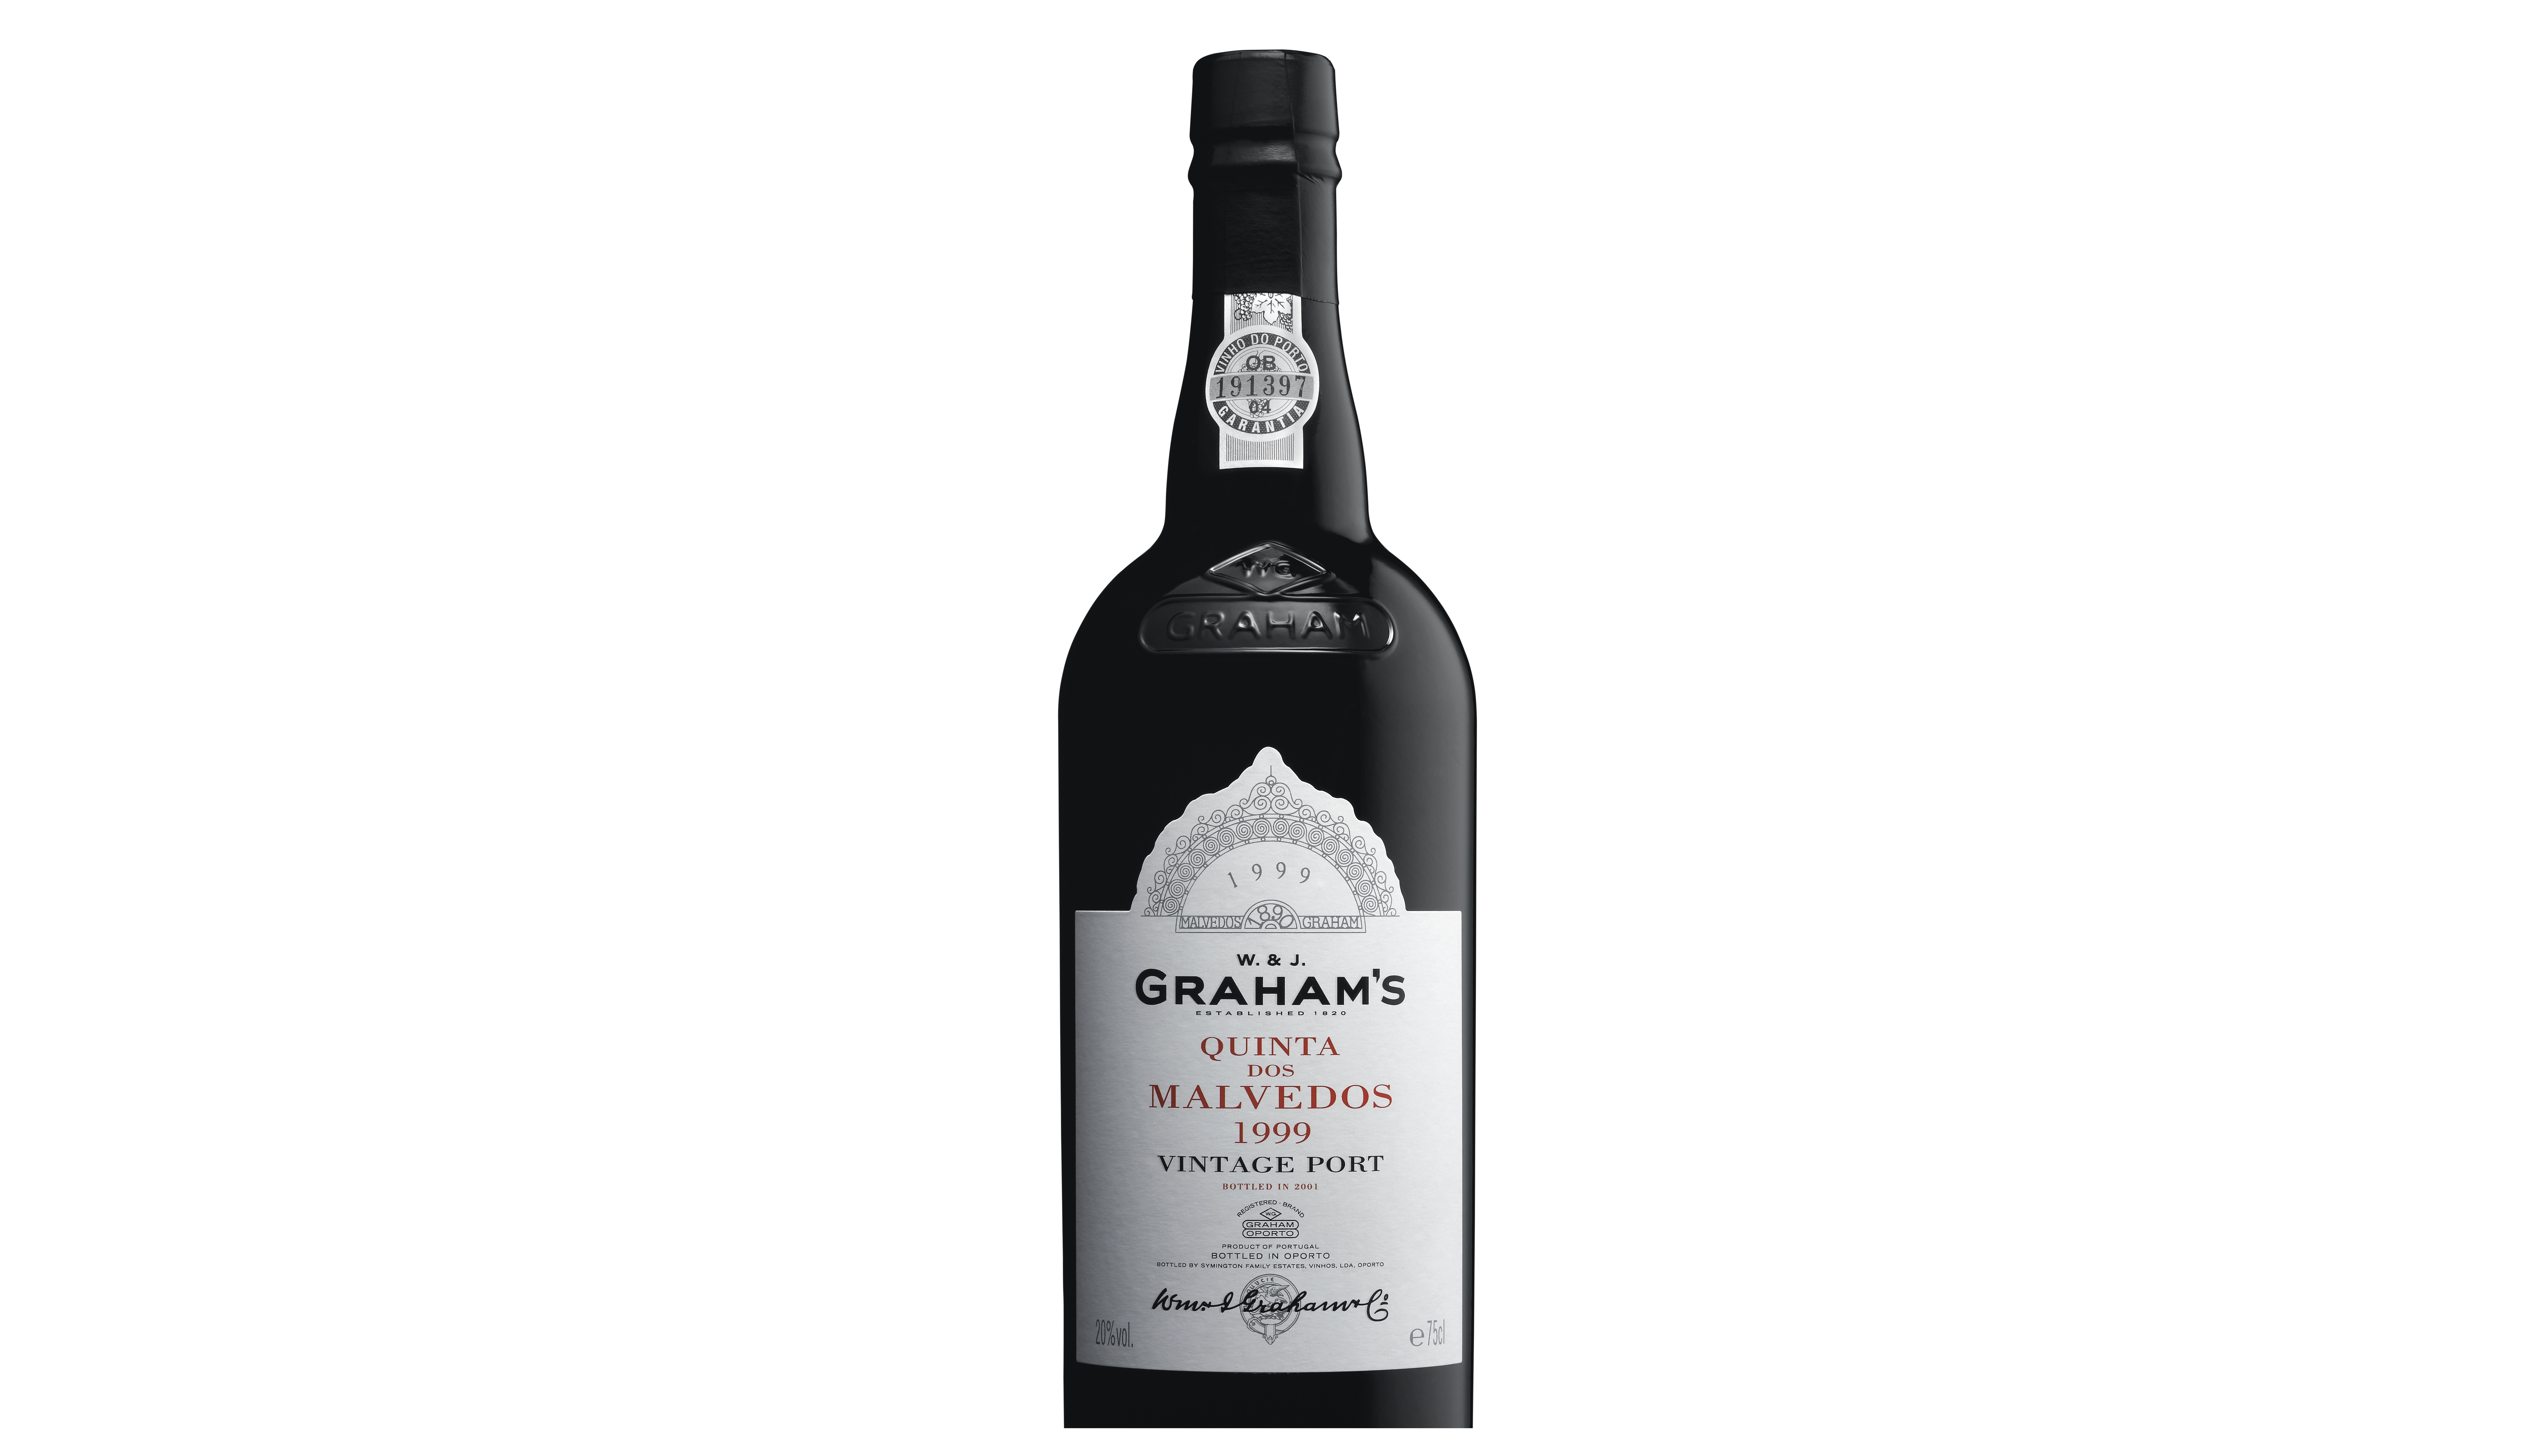 reviews awards middot graham s quinta dos malvedos